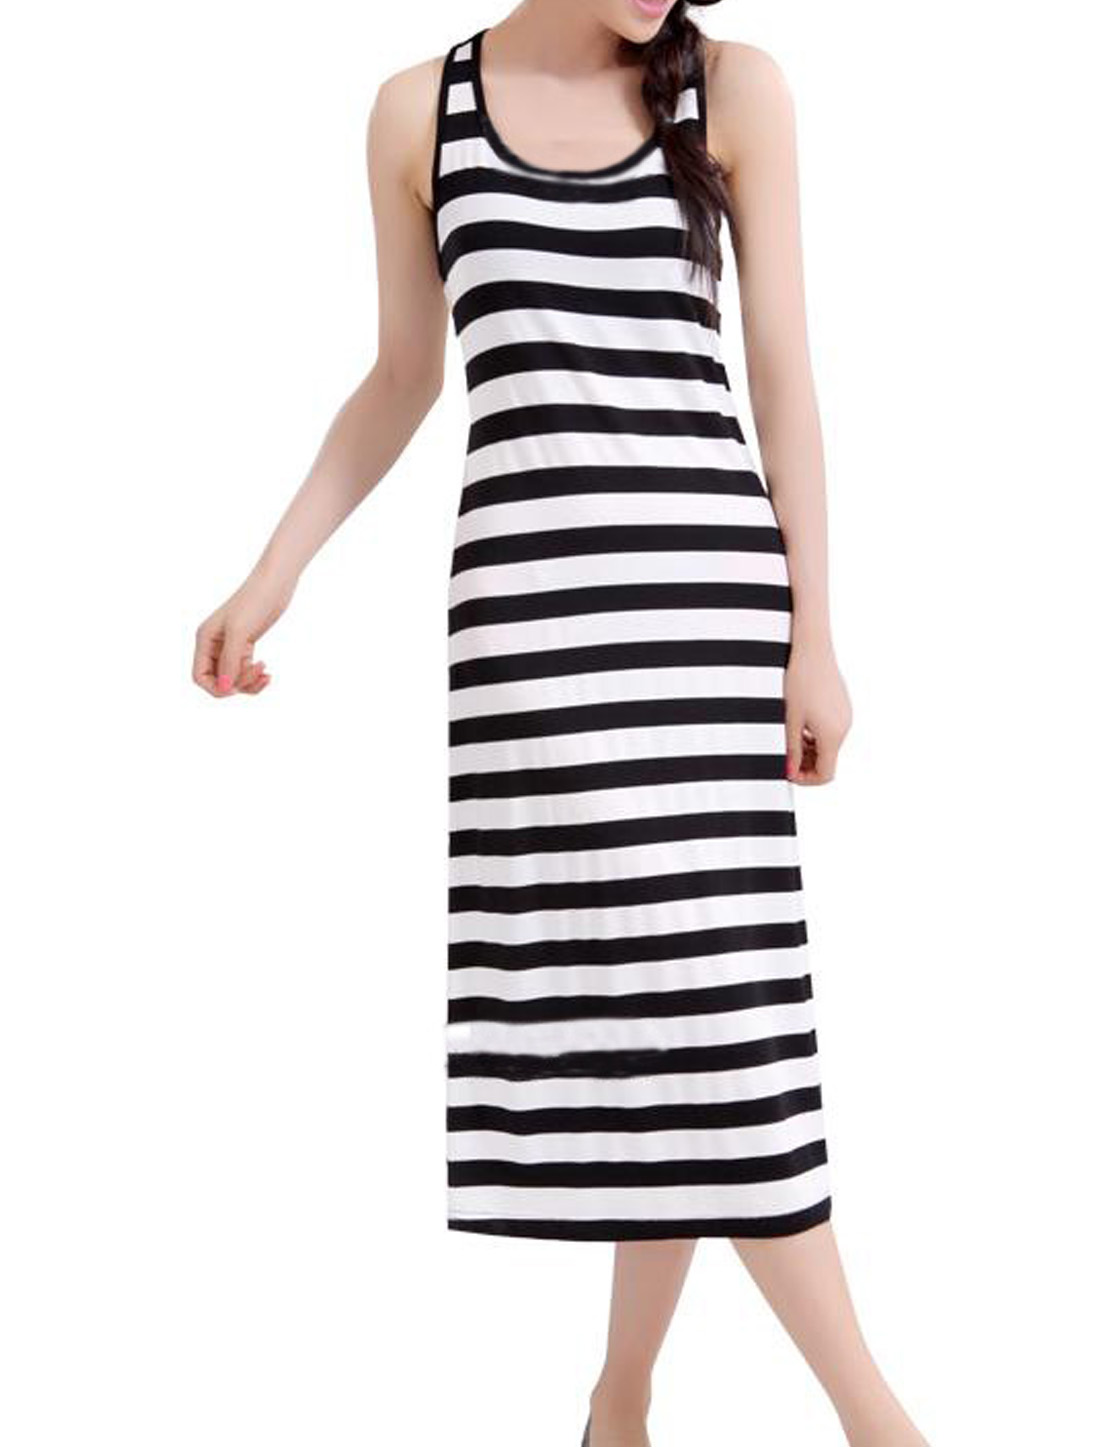 Ladies White Black Sleeveless Full Length Tank Dress M